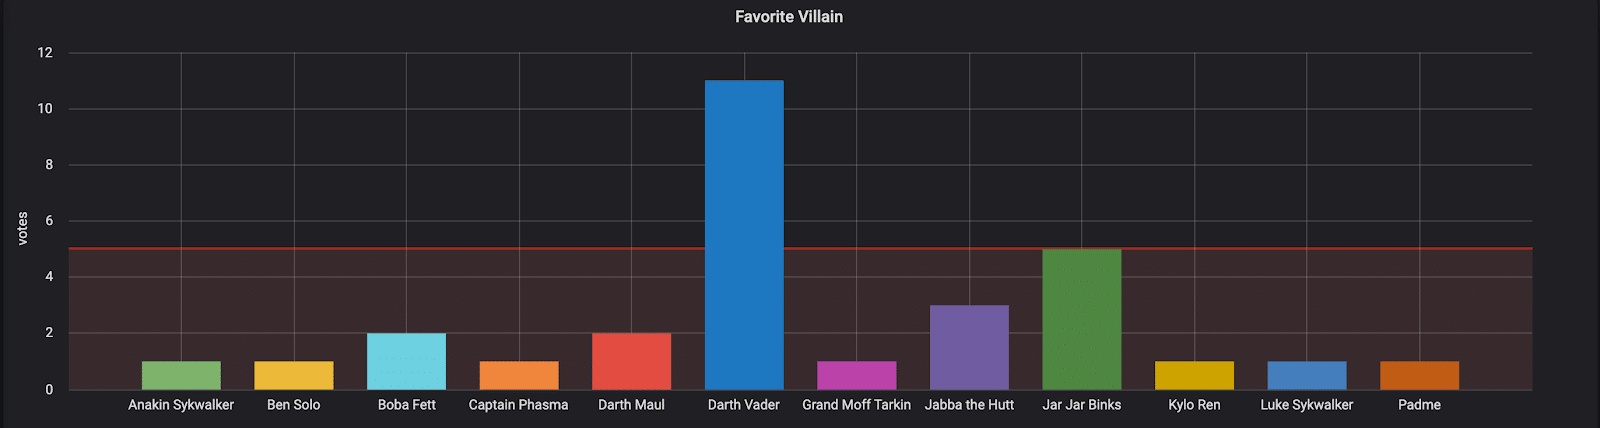 Favorite villain (Grafana dashboard)